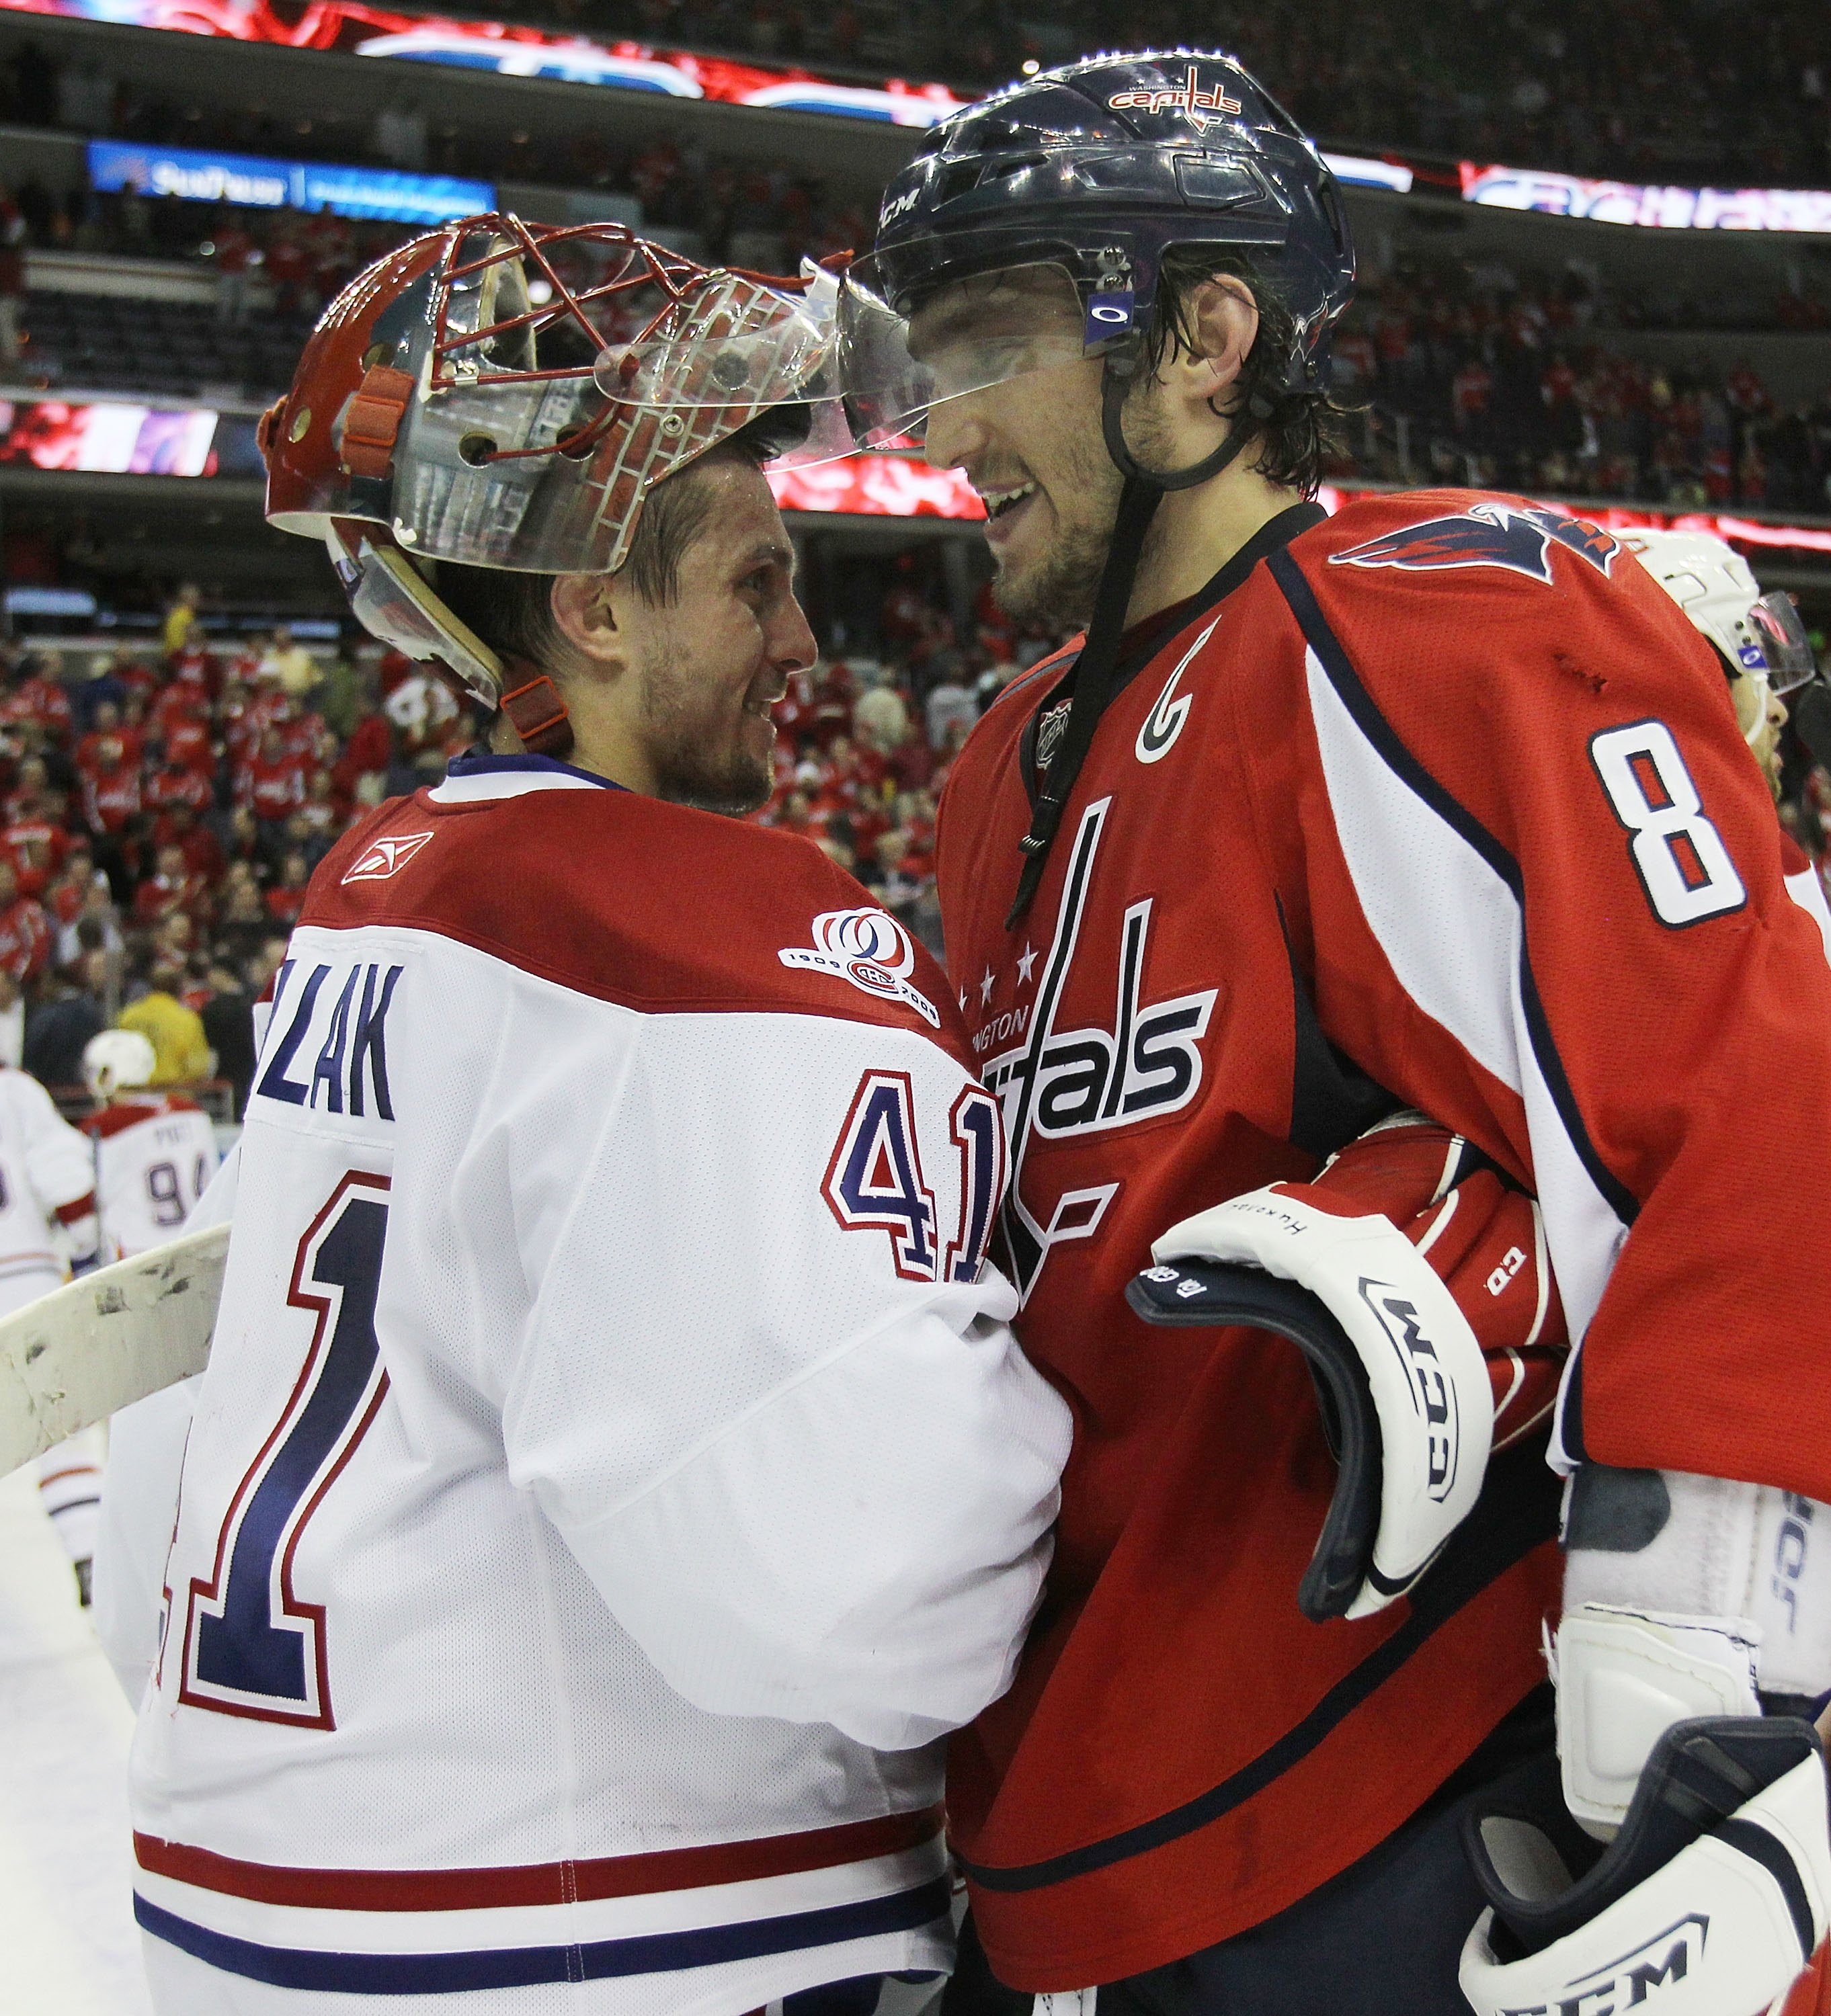 WASHINGTON - APRIL 28:  Jaroslav Halak #41 of the Montreal Canadiens shakes hands with Alex Ovechkin #8 of the Washington Capitals following the Canadiens 2-1 win in Game Seven of the Eastern Conference Quarterfinals during the 2010 NHL Stanley Cup Playof